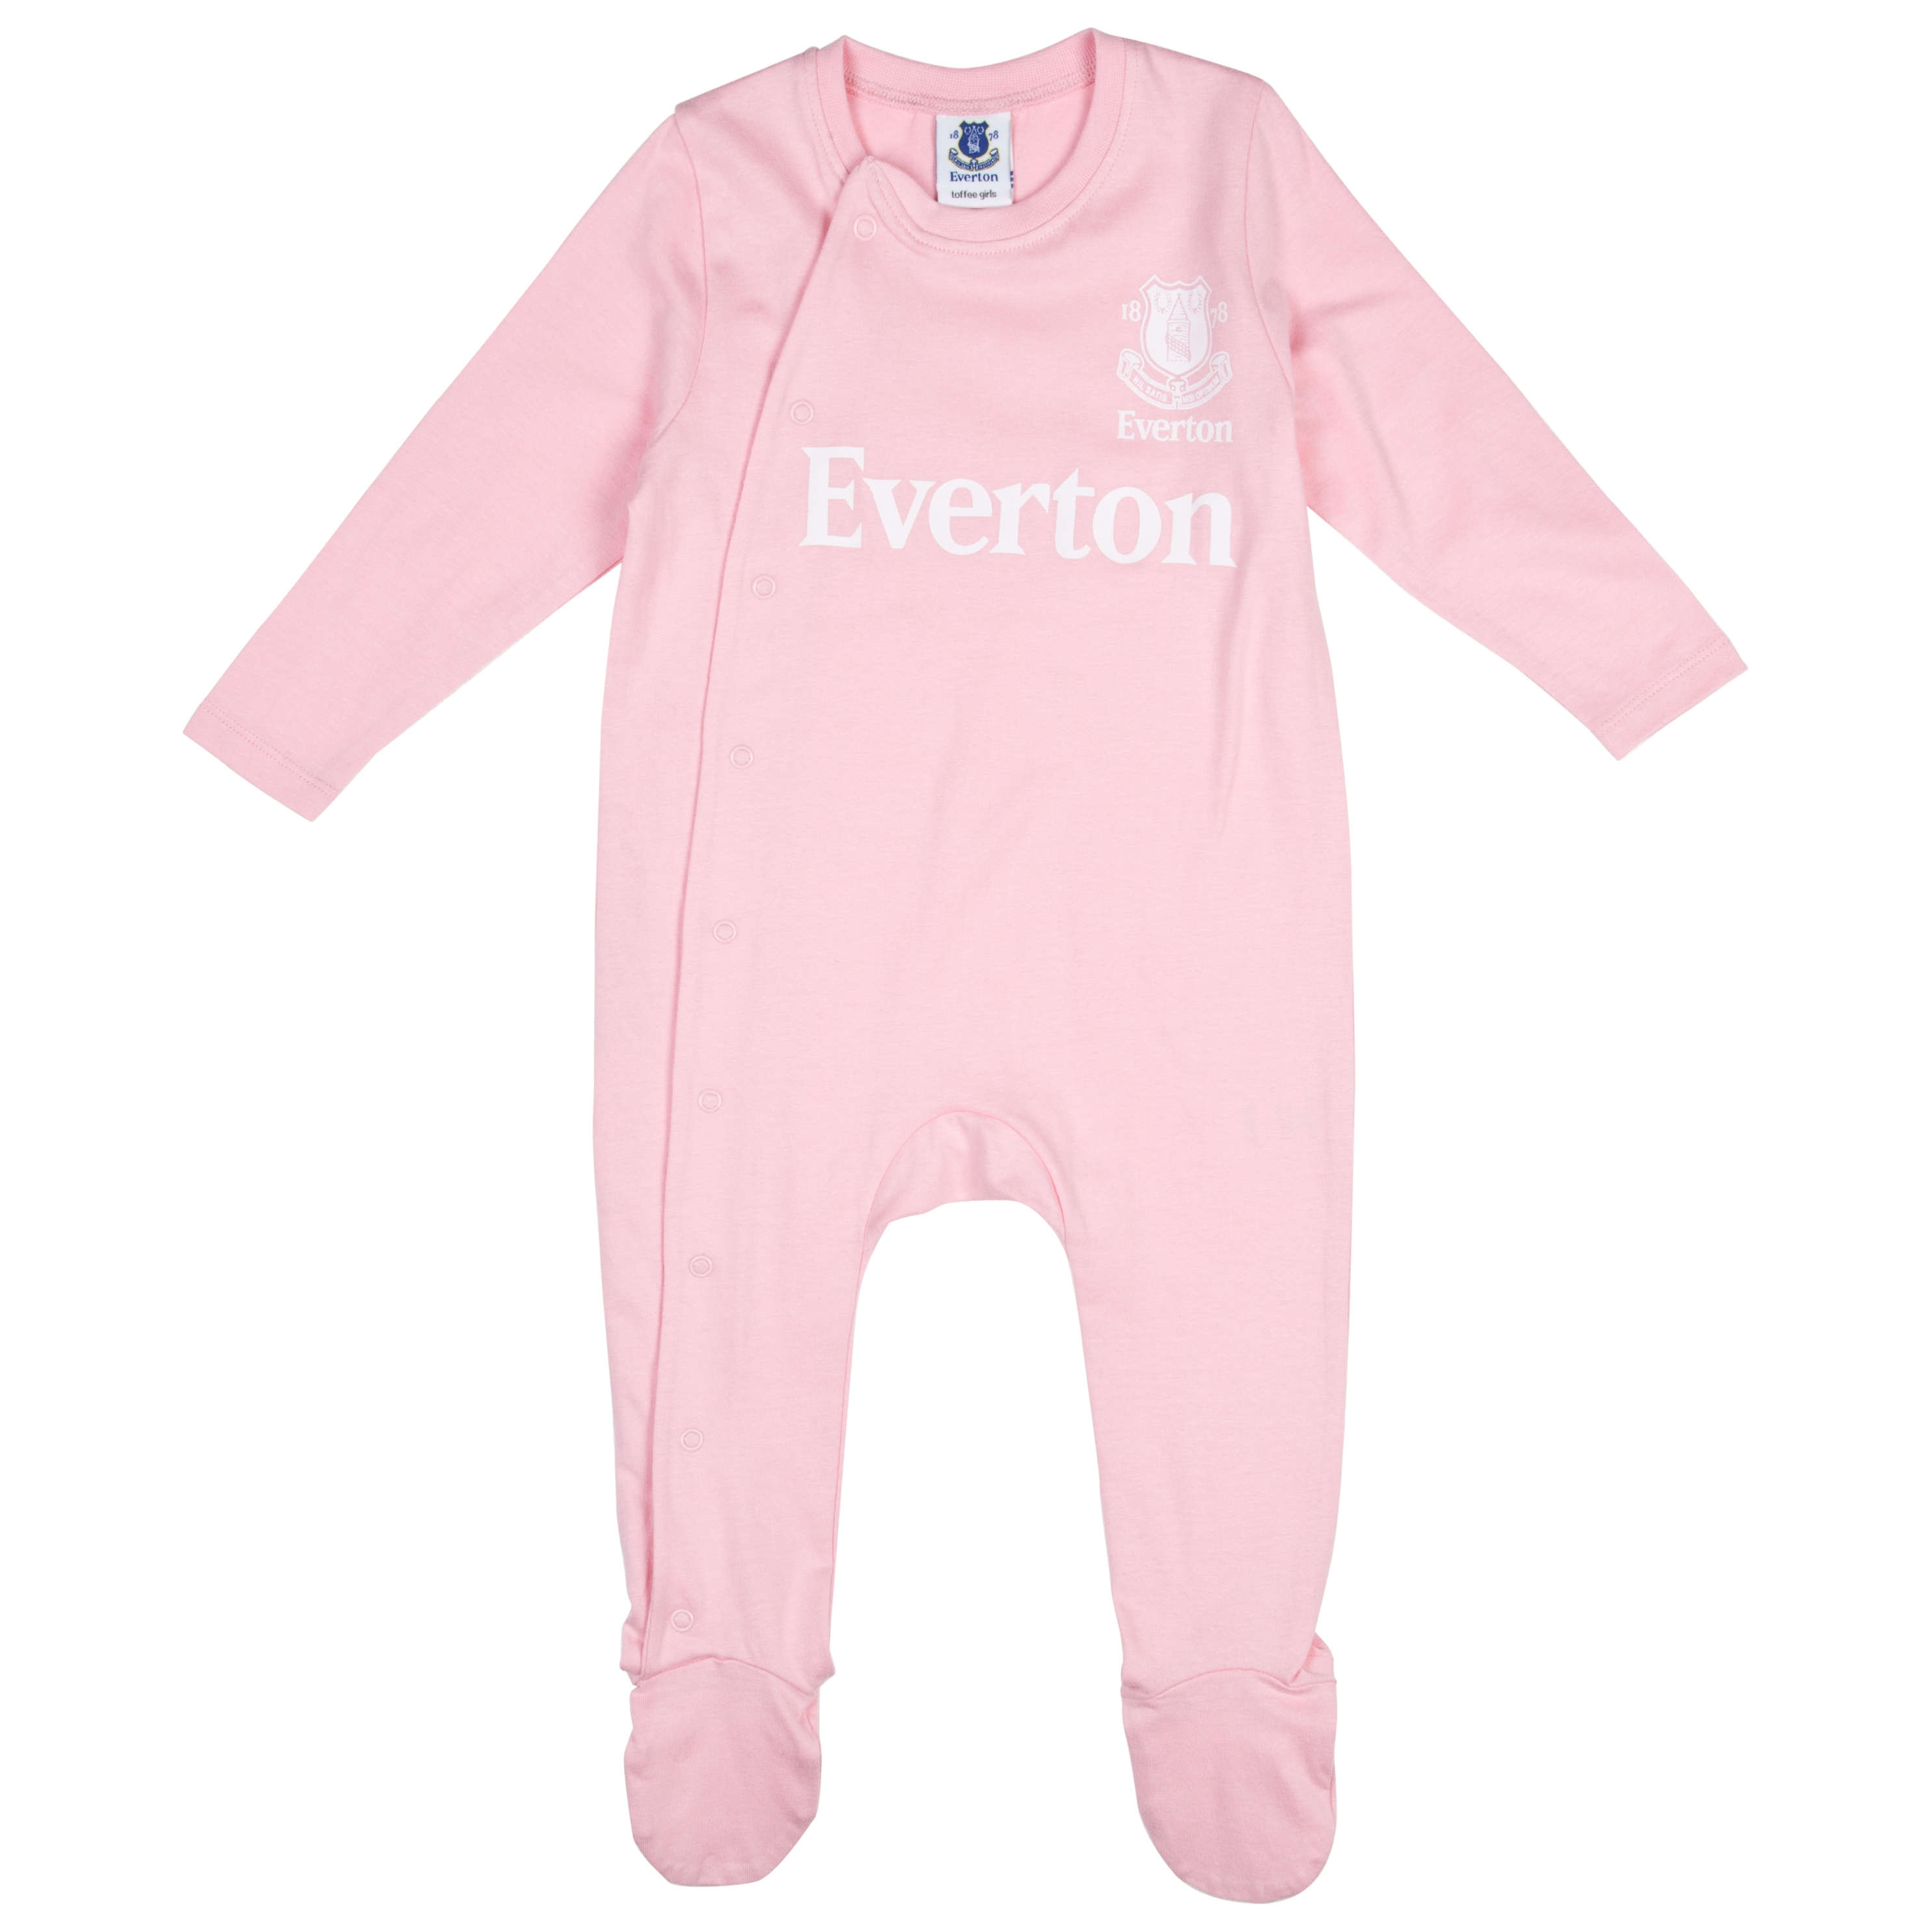 Everton 12/13 Kit Sleepsuit - Pink/White - Baby